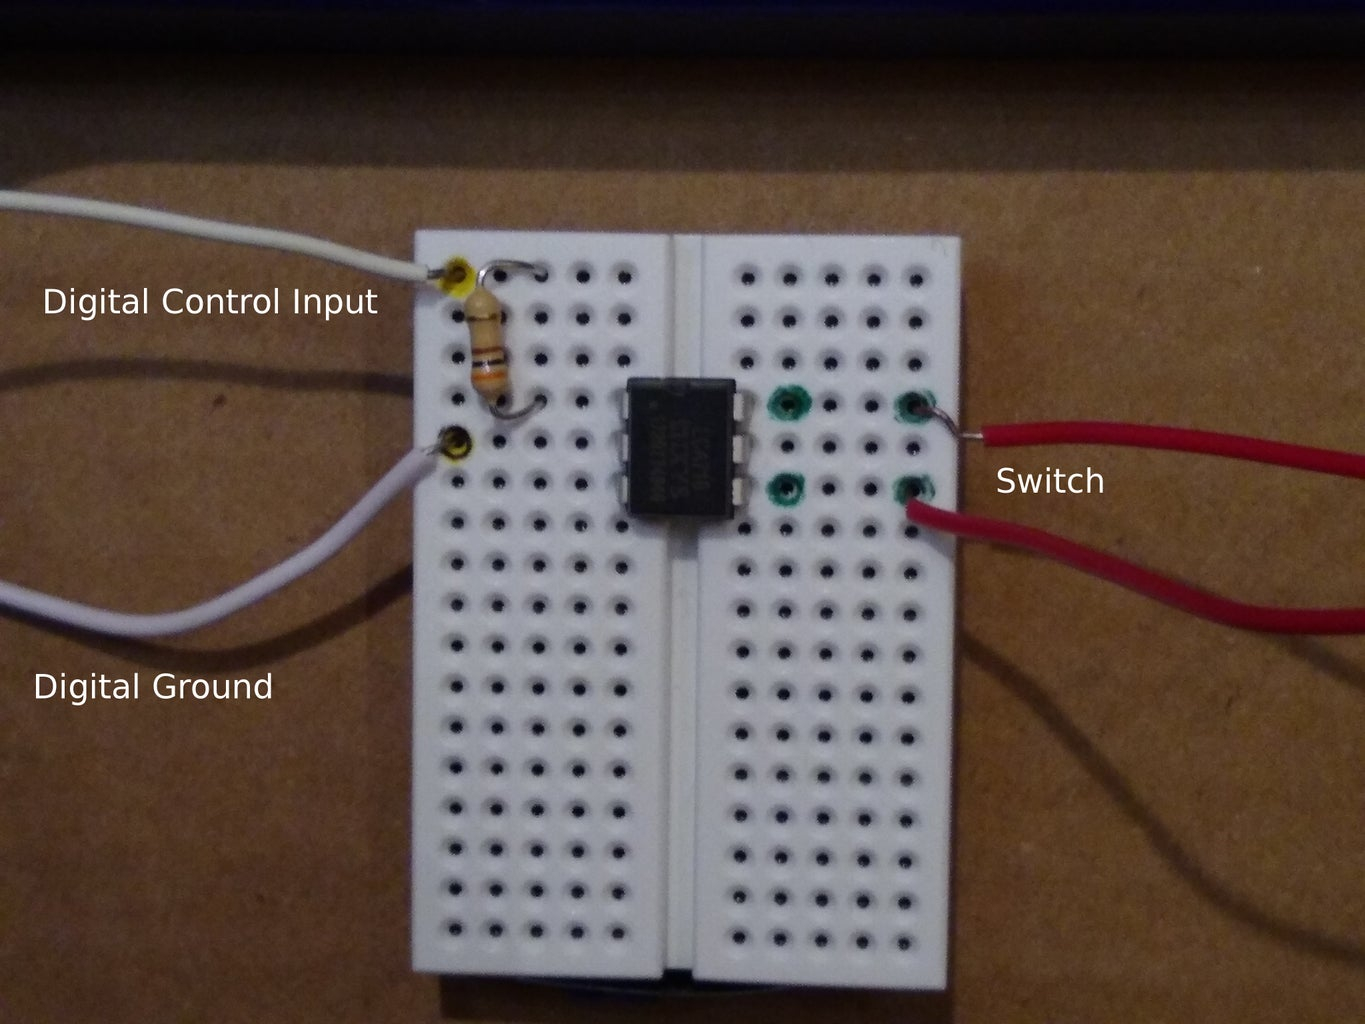 Attach the LCA710 Switch to the Knex Motor and Circuit Playground